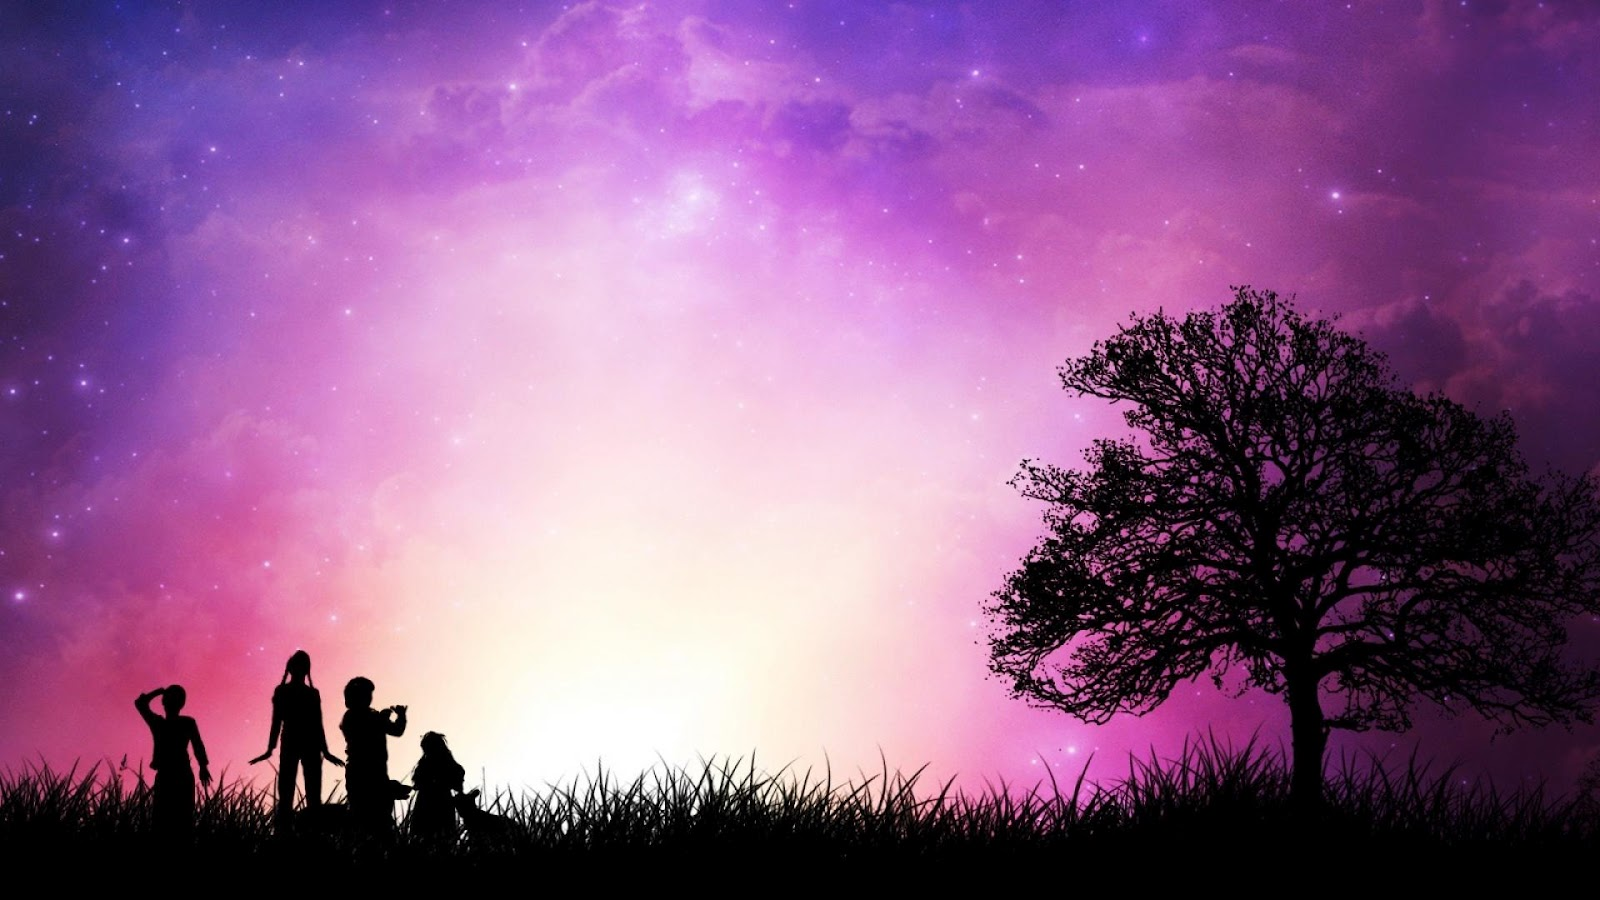 Hd Love Wallpapers Zip : Romantic Wallpapers HD Pictures HD Wallpapers ...